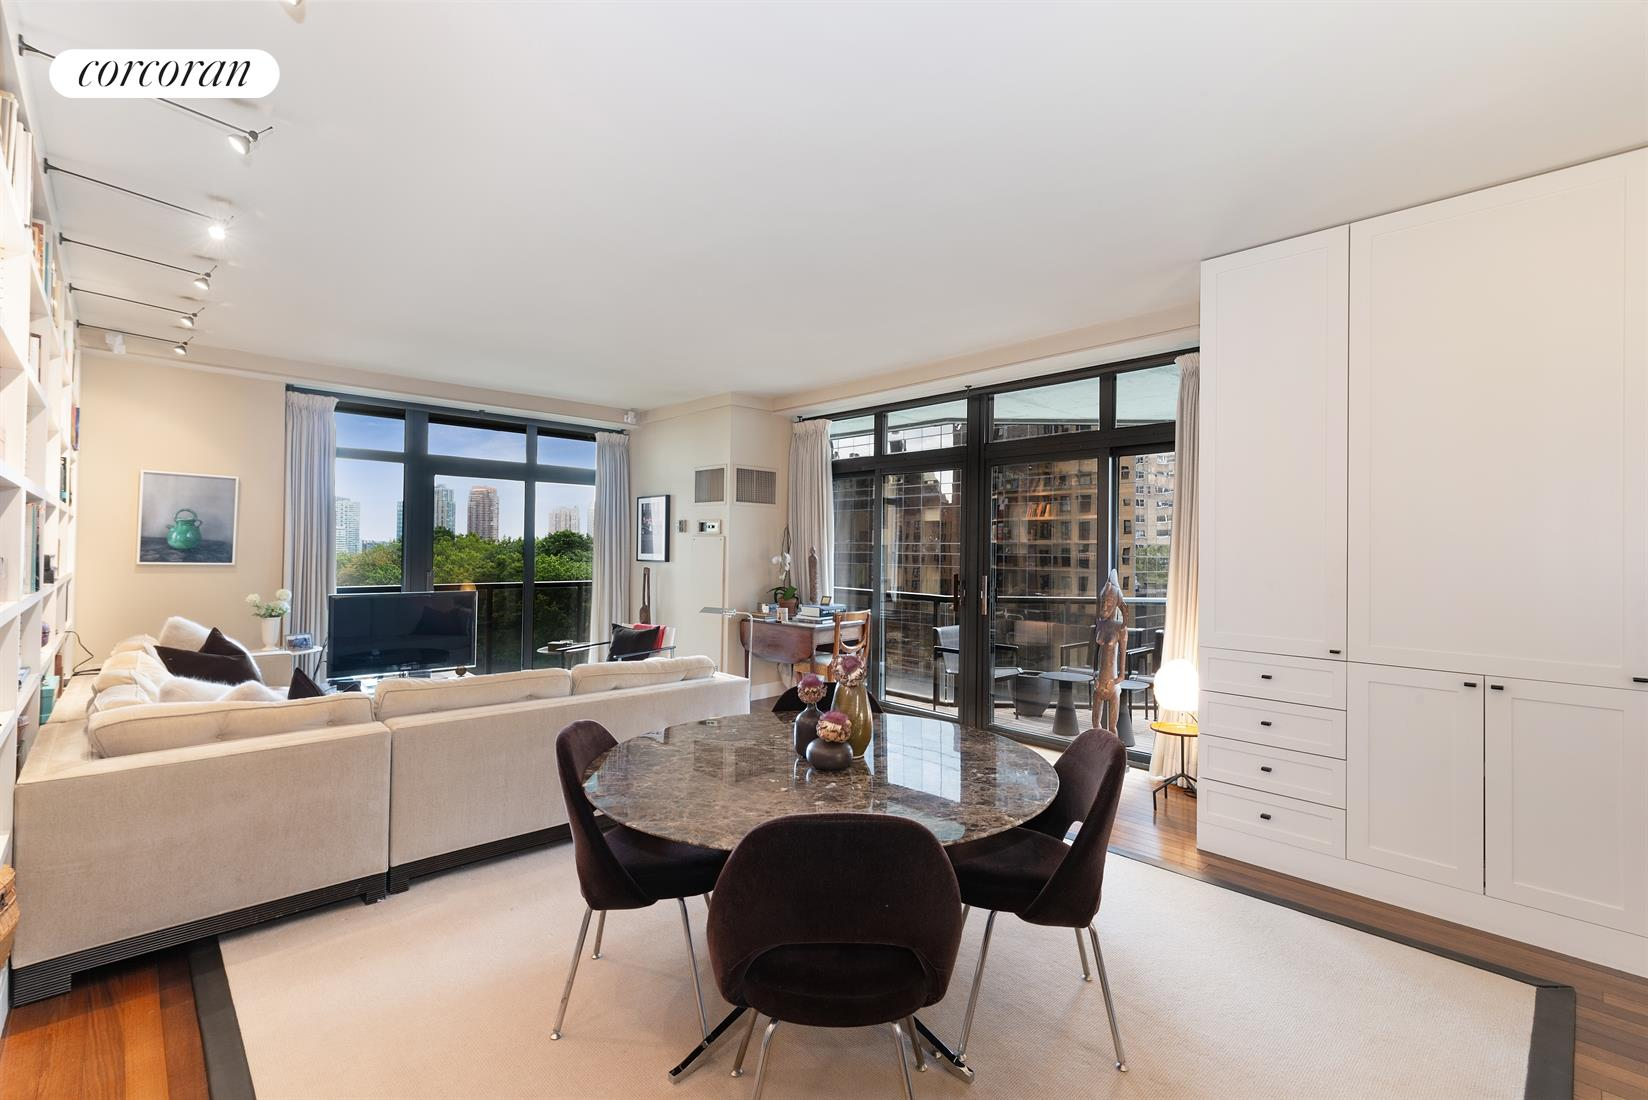 Fully renovated custom designed corner 2 bedroom, 2 bathroom with wrap balcony at 100 United Nations Plaza, one of Midtown Easts premiere white-glove condominiums.  Upon entering unit 9B at 100 United Nations Plaza you will pass through a welcoming foyer that leads to the spacious corner living and dining room with floor-to-ceiling windows and sliding glass doors that open out to the wrap-around balcony. Whether entertaining guests or having a quiet night in, enjoy picturesque views to the East River and overlooking the UN Gift Garden, as well as the city skyline to the south. A wall of custom built-in bookshelves with accent lighting and large built-in storage unit round out this inviting living space. The adjacent windowed kitchen has been gorgeously renovated and features warm, figured walnut cabinetry, quartz countertops and a classic subway tile backsplash with a suite of stainless steel appliances from Bosch. The generously sized, south-facing master bedroom suite boasts three large closets including a walk-in, custom built-ins and track lighting. The en suite master bathroom has been elegantly finished with floor-to-ceiling tile, marble floors, dual sink marble-topped vanity, recessed lighting, an extra-large walk-in shower with sliding glass doors and Cesana hardware, with fittings and fixtures from Toto and Waterworks. The sizeable second bedroom, found on the opposite side of the apartment from the master suite, has an eastern exposure as well as its own renovated en suite bath finished in a crisp white palette with floor-to-ceiling subway tile, pedestal sink and Jacuzzi bathtub.Measuring approximately 1,337 square feet, additional features of this polished home include roasted oak hardwood floors throughout, custom built-out closets, abundant storage space, separate laundry room complete with a utility sink and side-by-side washer and dryer, central heat and A/C, and custom mahogany wood flooring on the outdoor balcony.Located on East 48th Street and Firs